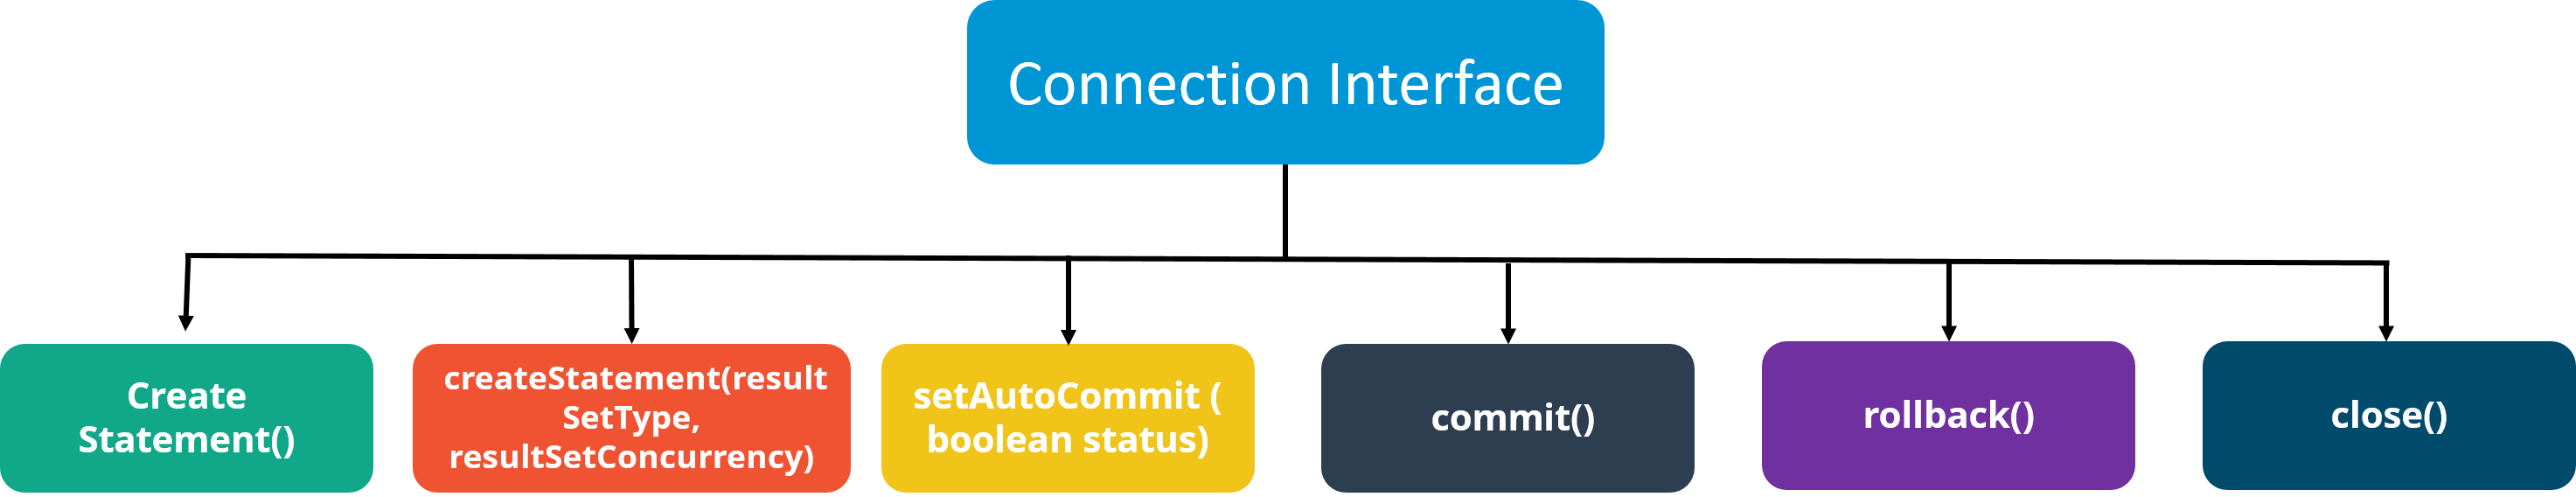 ConnectionInterface - Java Interview Questions - Edureka